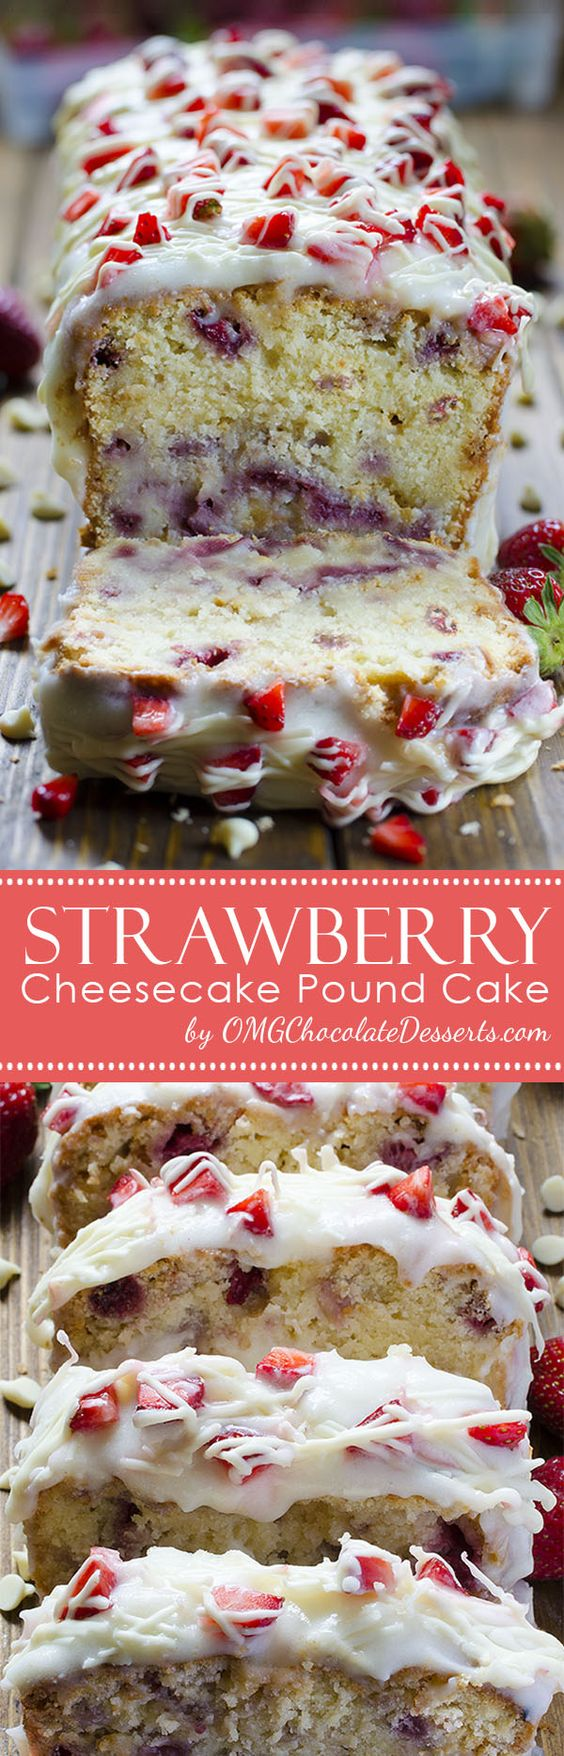 Strawberry Cheesecake Pound Cake Recipe via OMG Chocolate Desserts - Start your spring dessert season with fresh strawberry and delicious pound cake #dessertbreads #neighborgifts #homemadegifts #foodgifts #breadrecipes #flavoredbreads #sweetbreads #holidaybread #bread #homemadebread #simplebreadrecipes #simplebread #simplerecipes